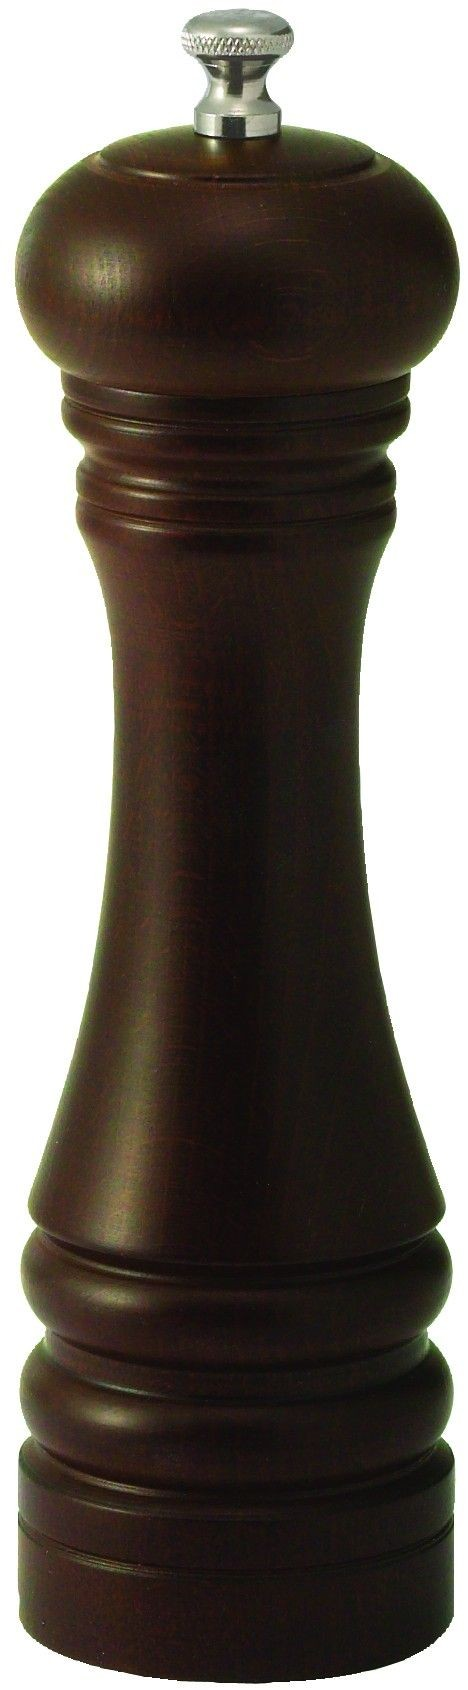 Winco wpm-8tl Maestro Classic Pepper Mill, 8""